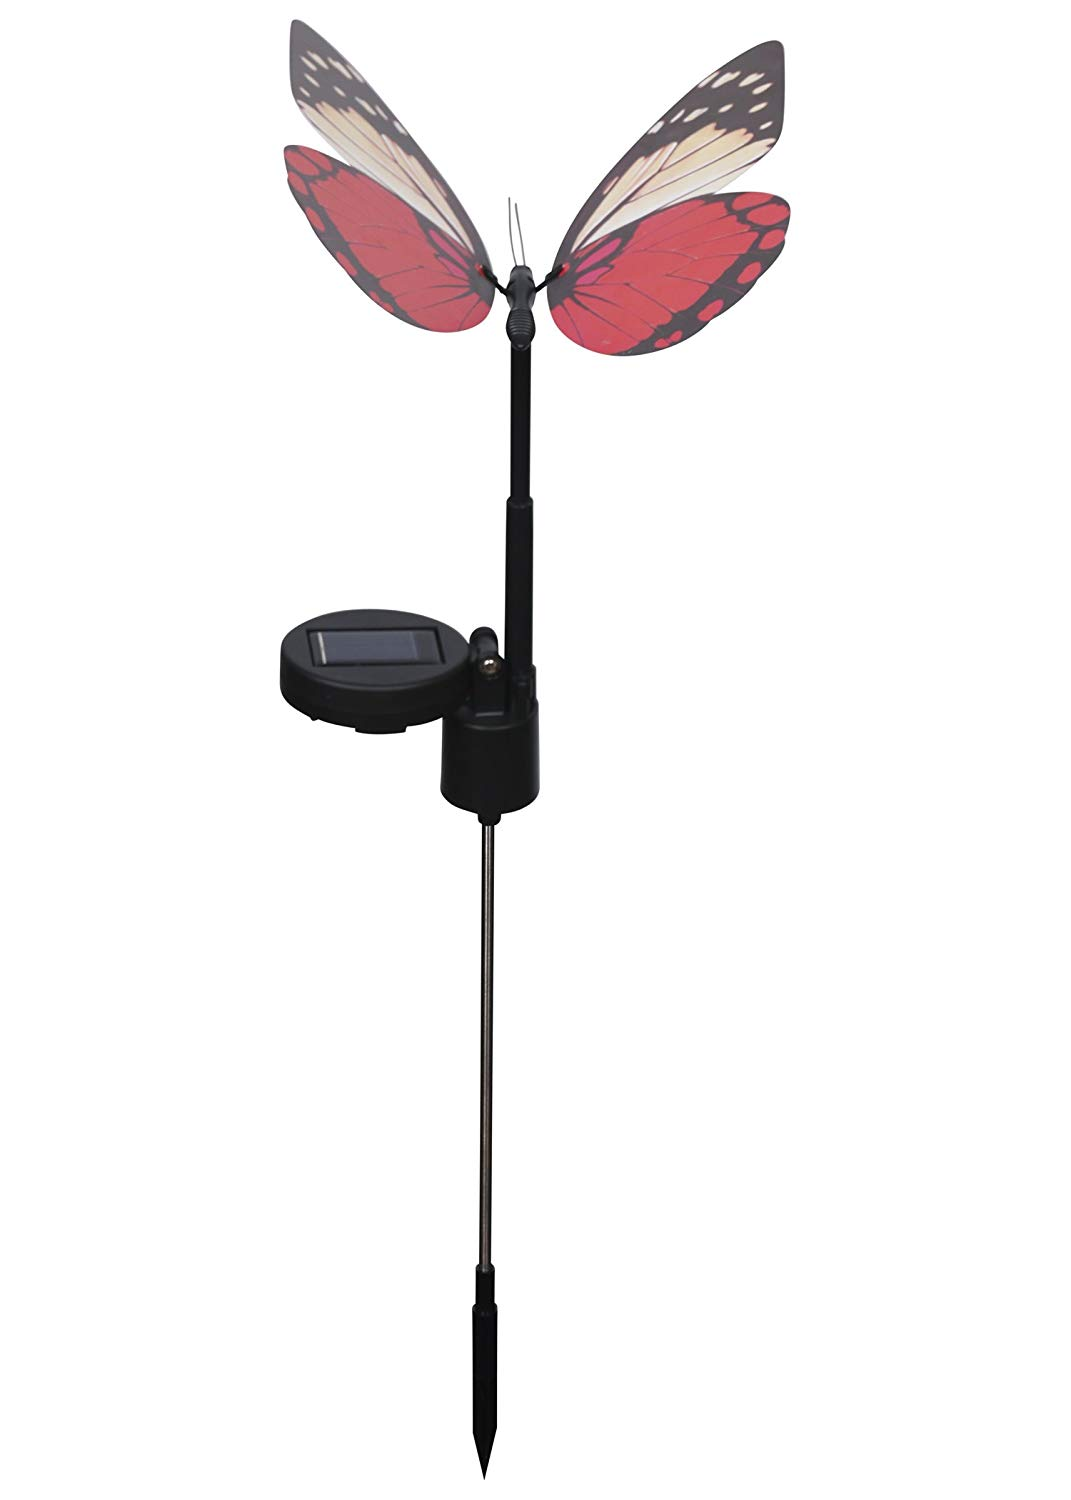 Russco III GS133861 Solar Powered Flapping Garden Stake, Pink Butterfly